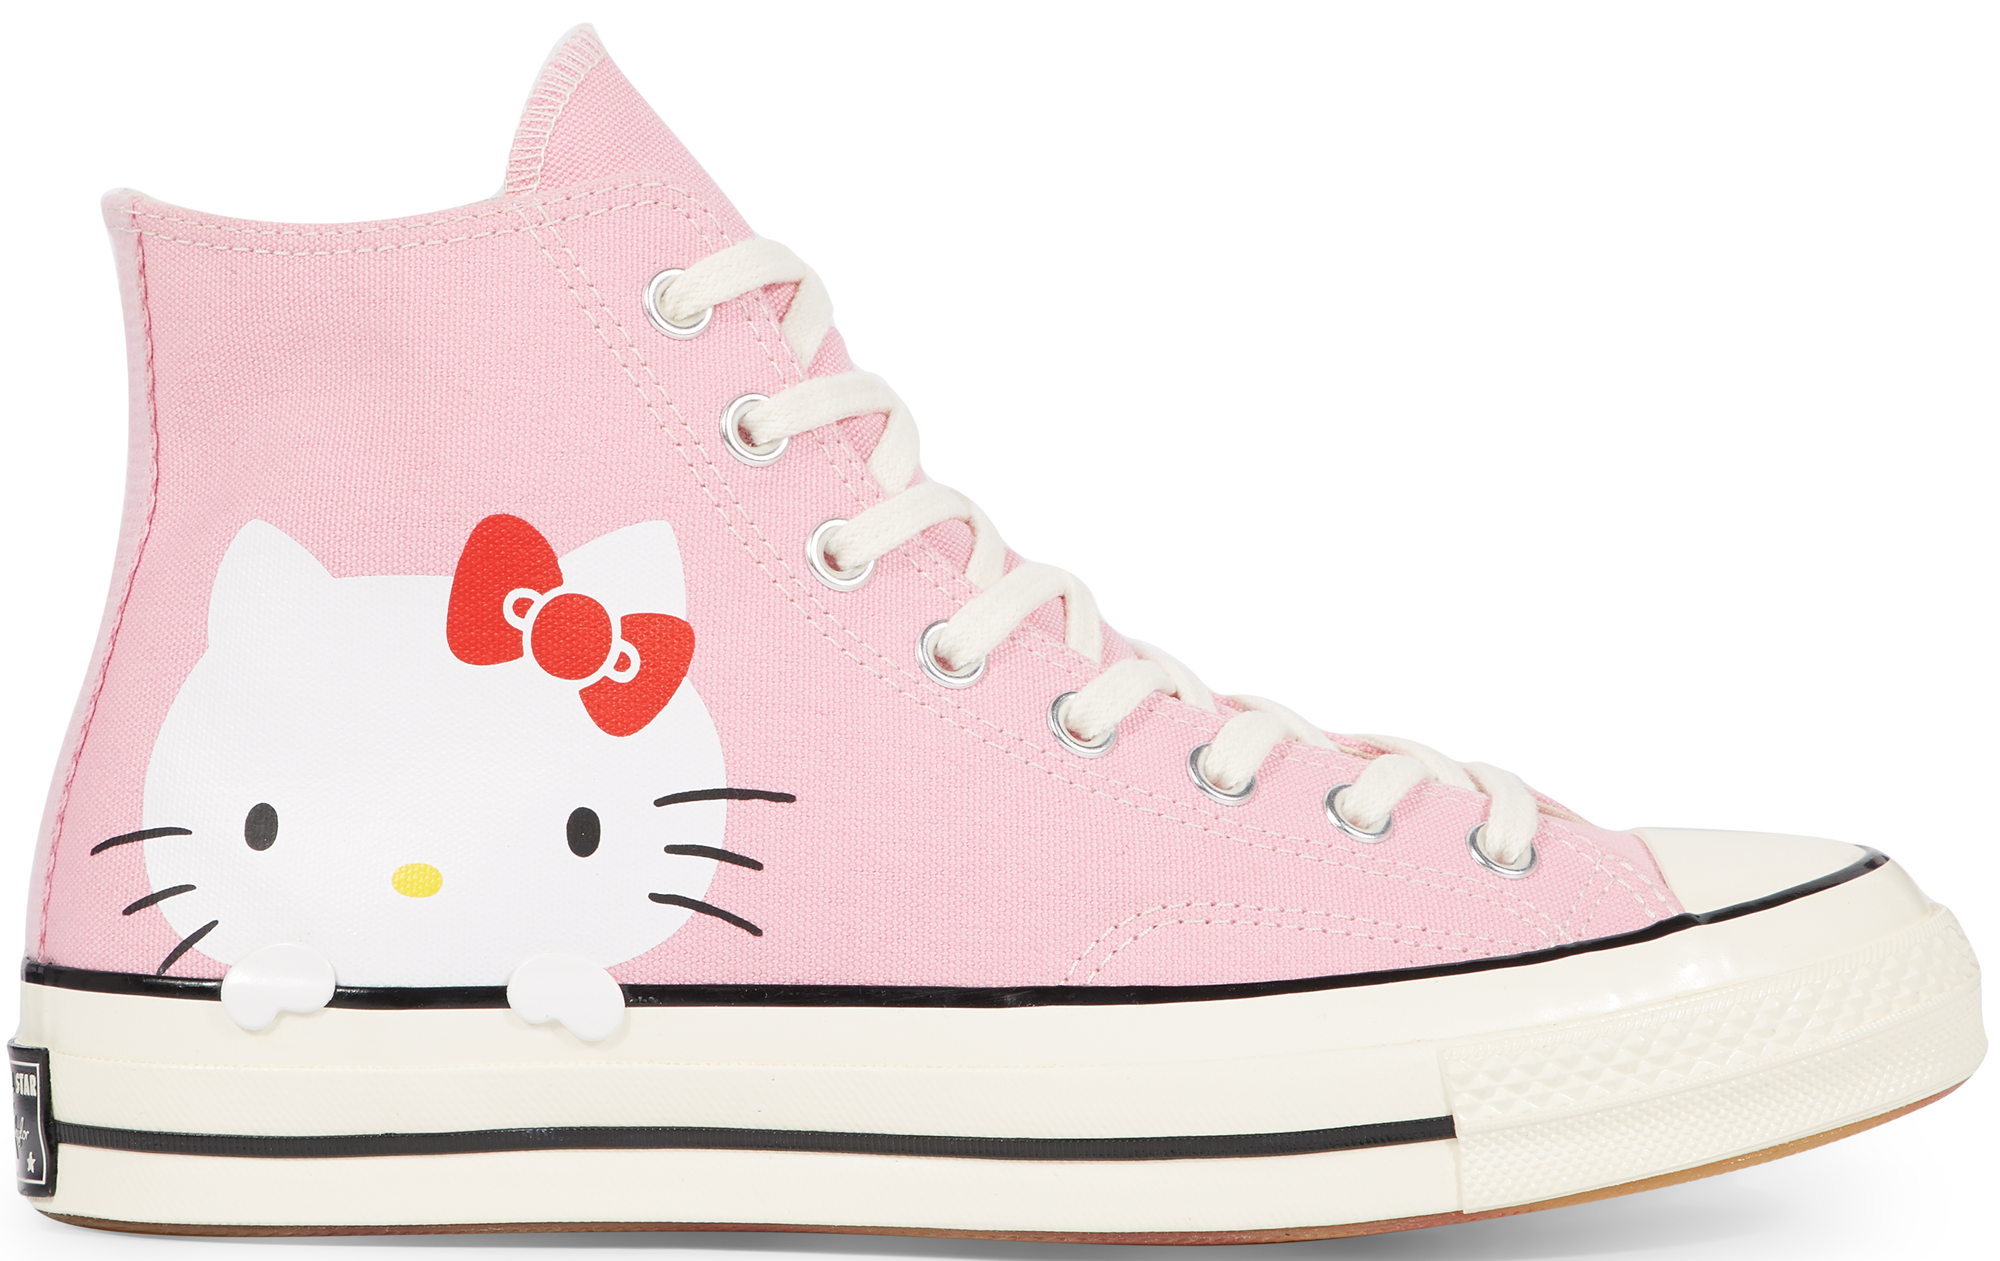 Converse Chuck Taylor All-Star 70s Hi Hello Kitty Pink